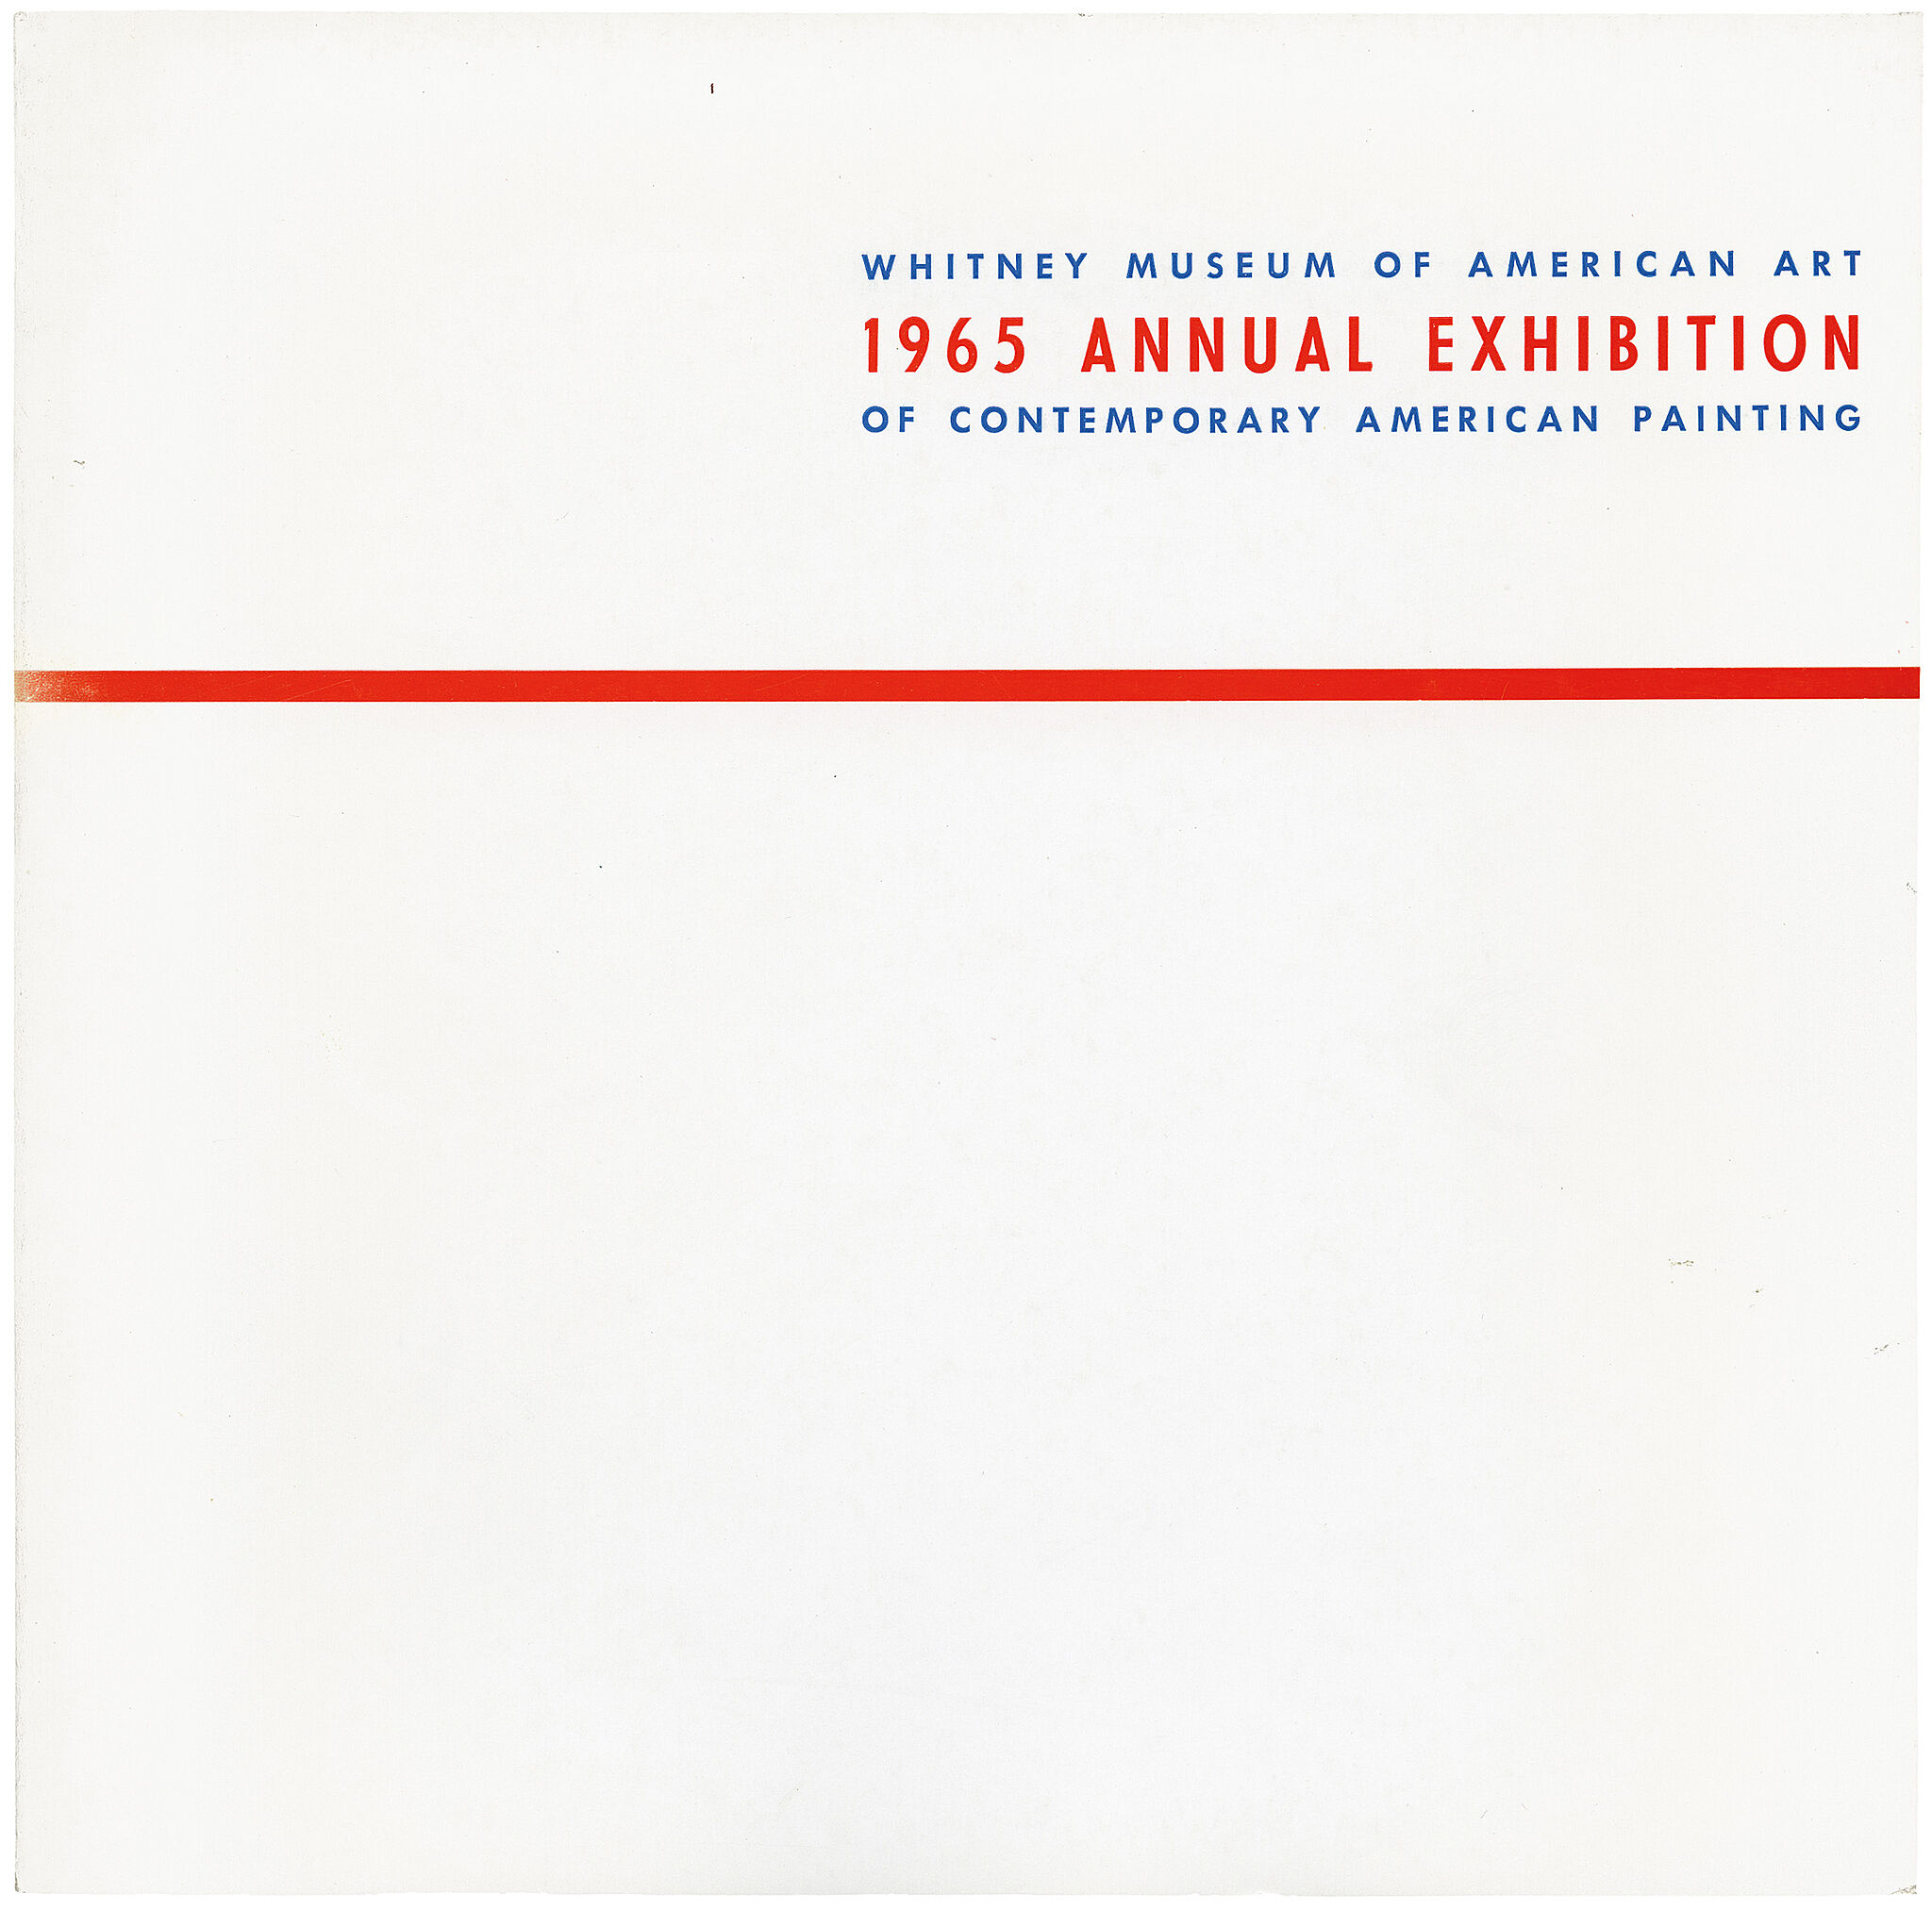 Cover for 1965 Annual Exhibition of Contemporary American Painting catalogue